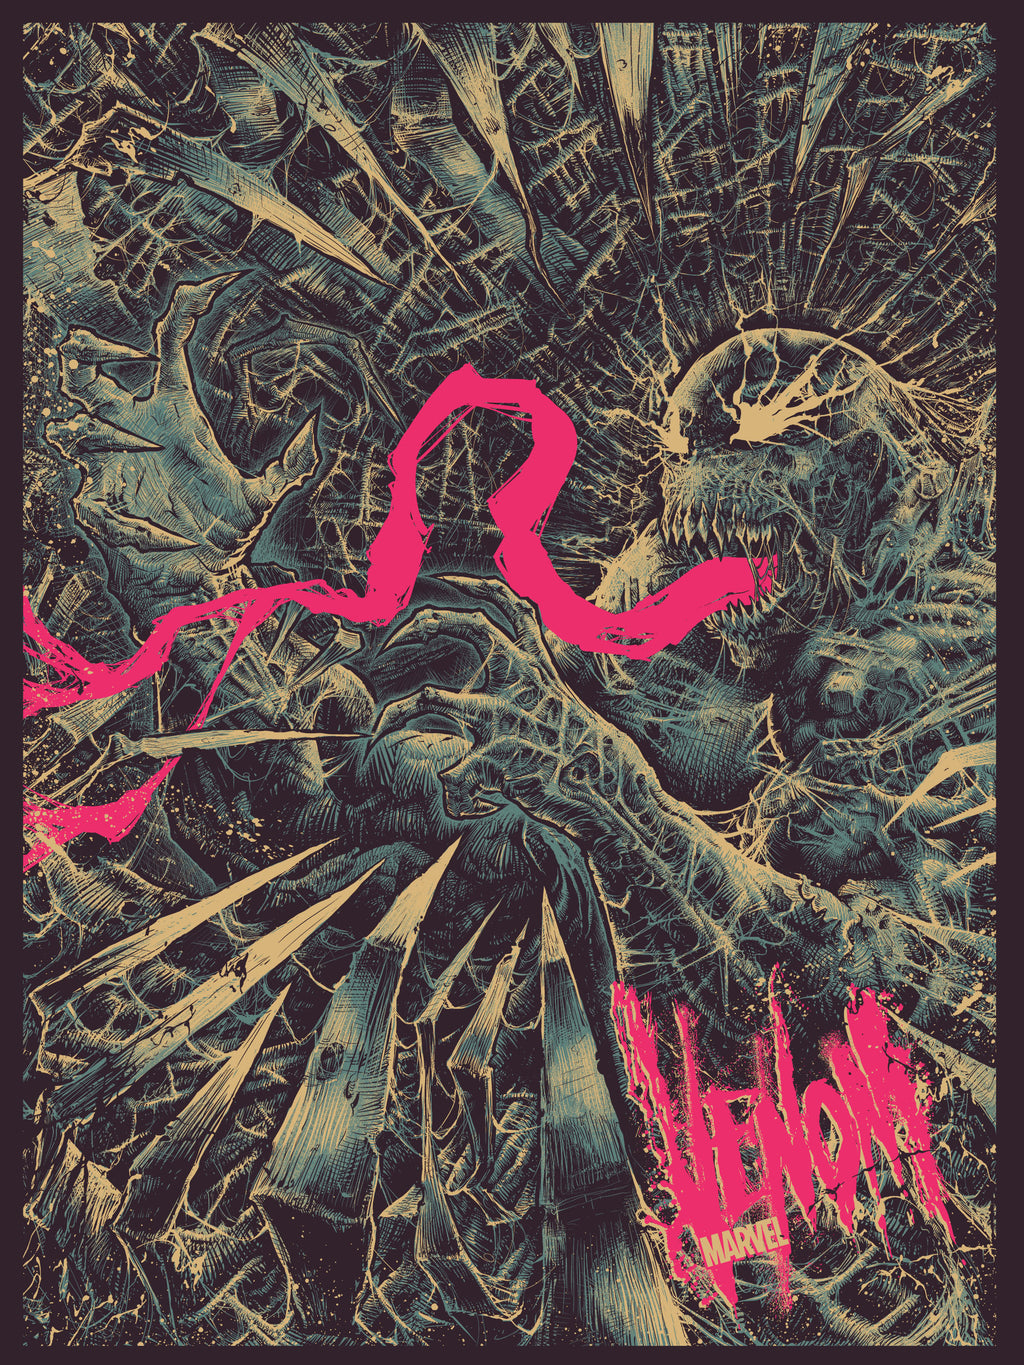 """Venom"" (Glow in the Dark) - Officially Licensed & Limited Edition, Marvel Comics Poster Art By Godmachine 